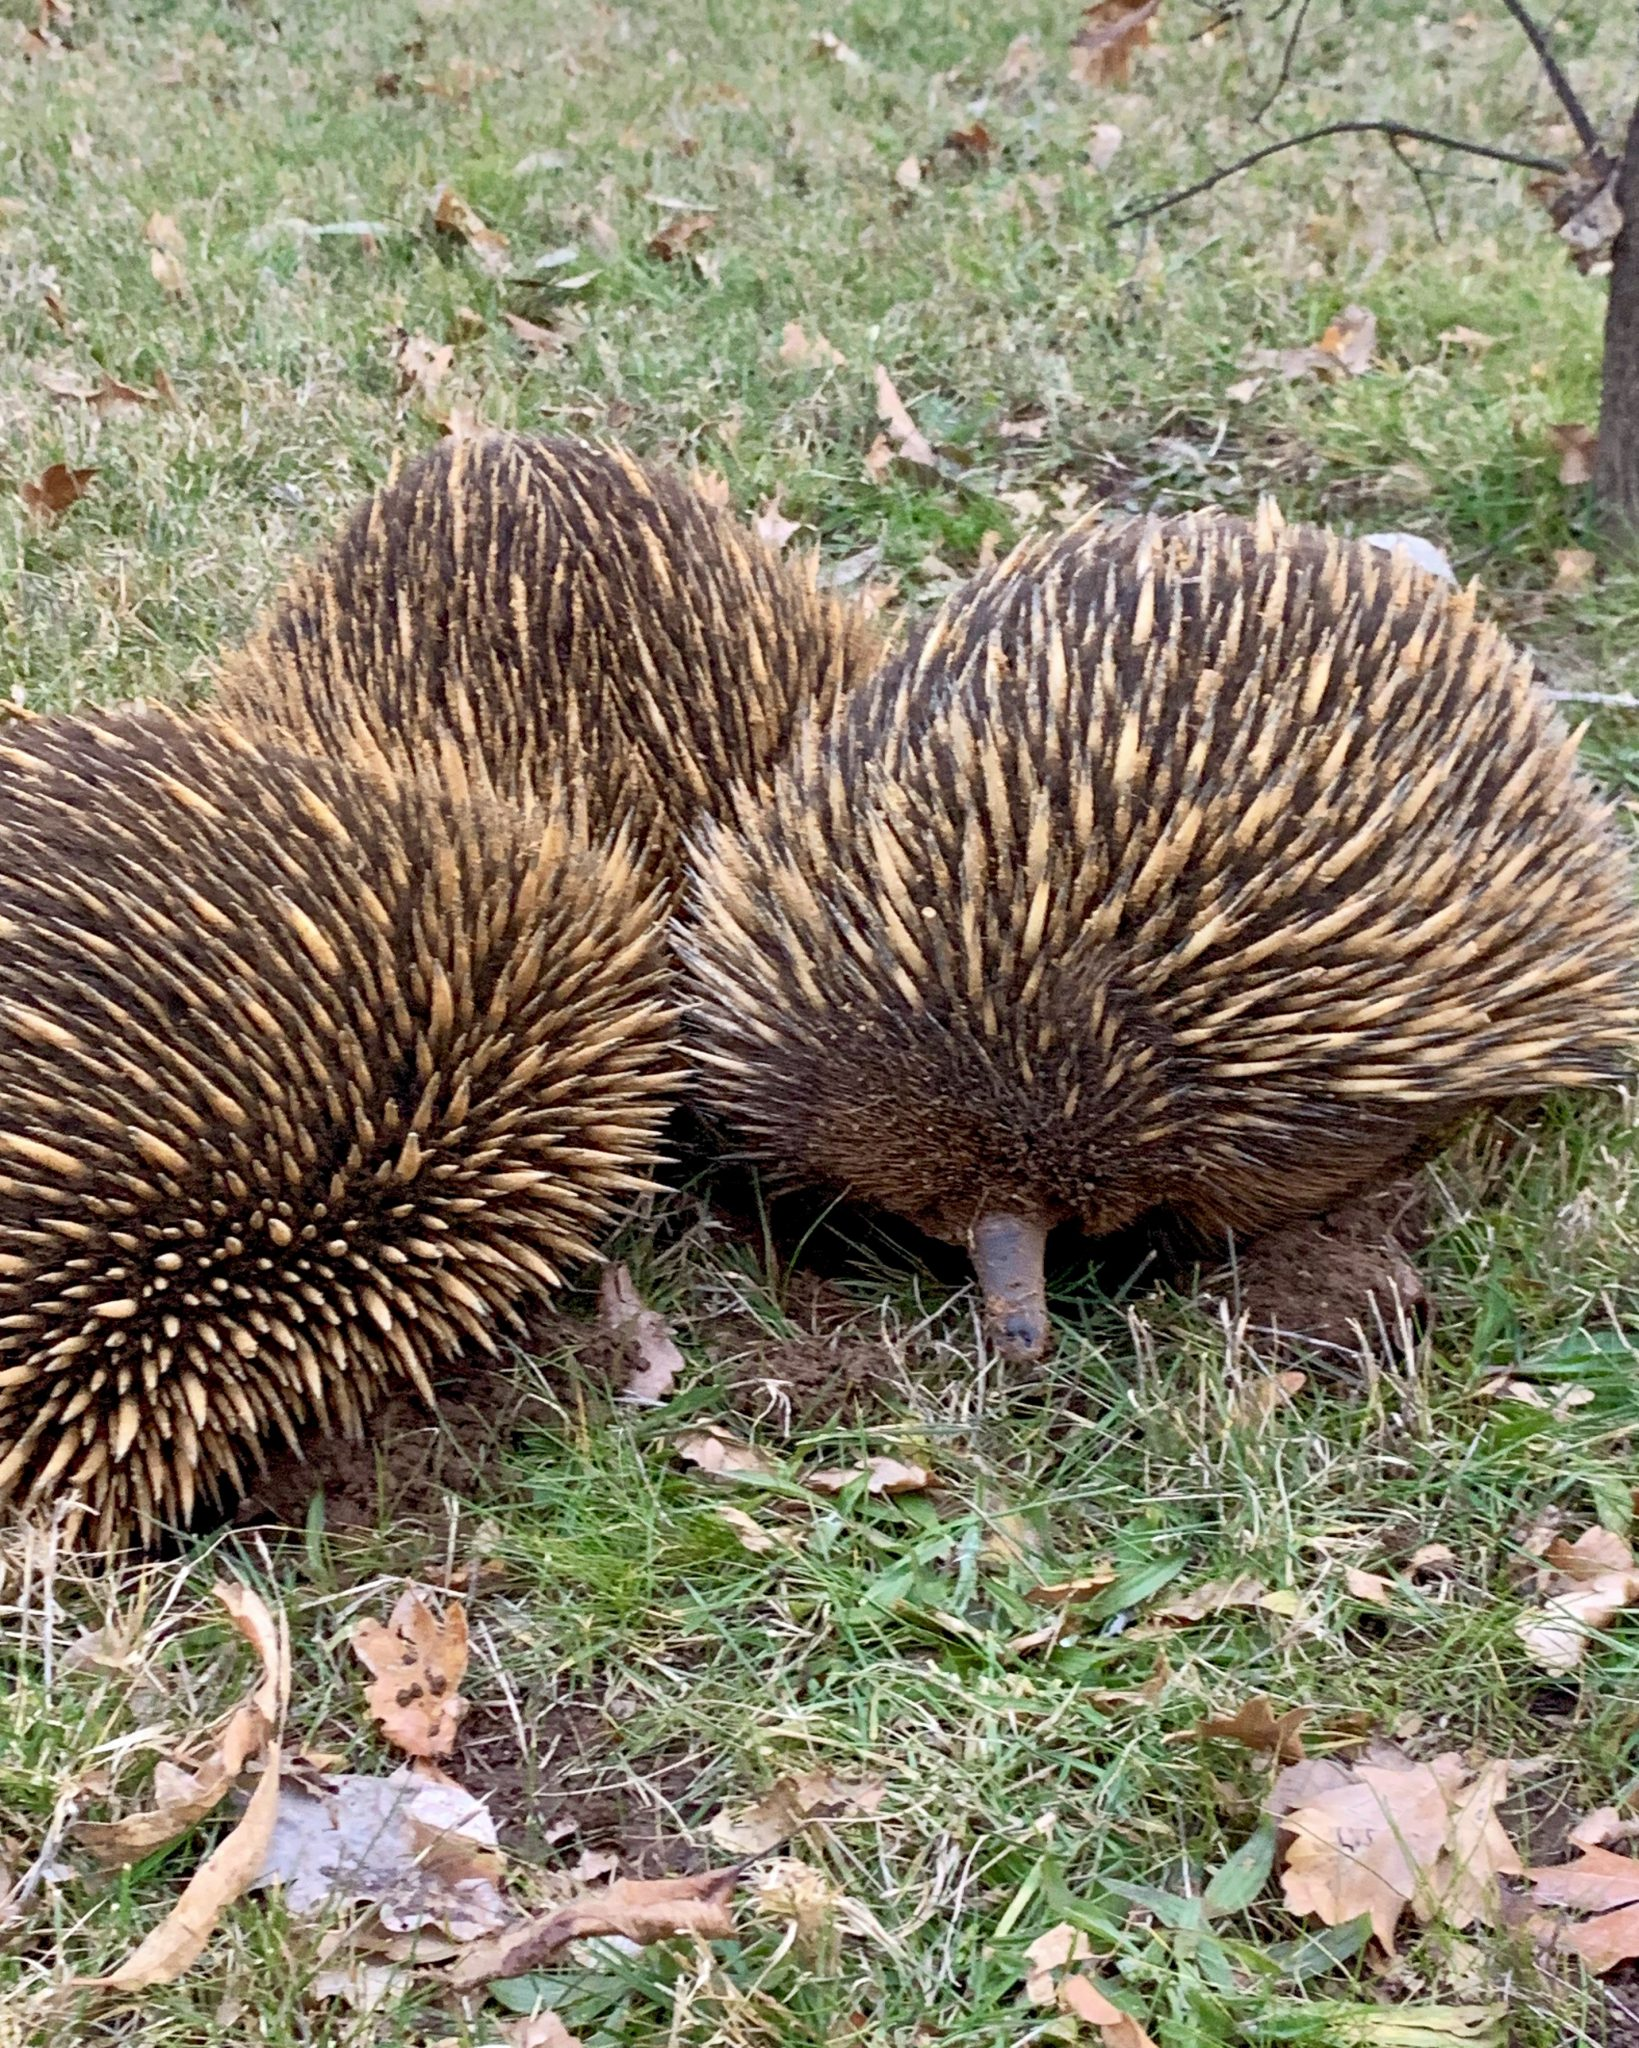 An echidna love train